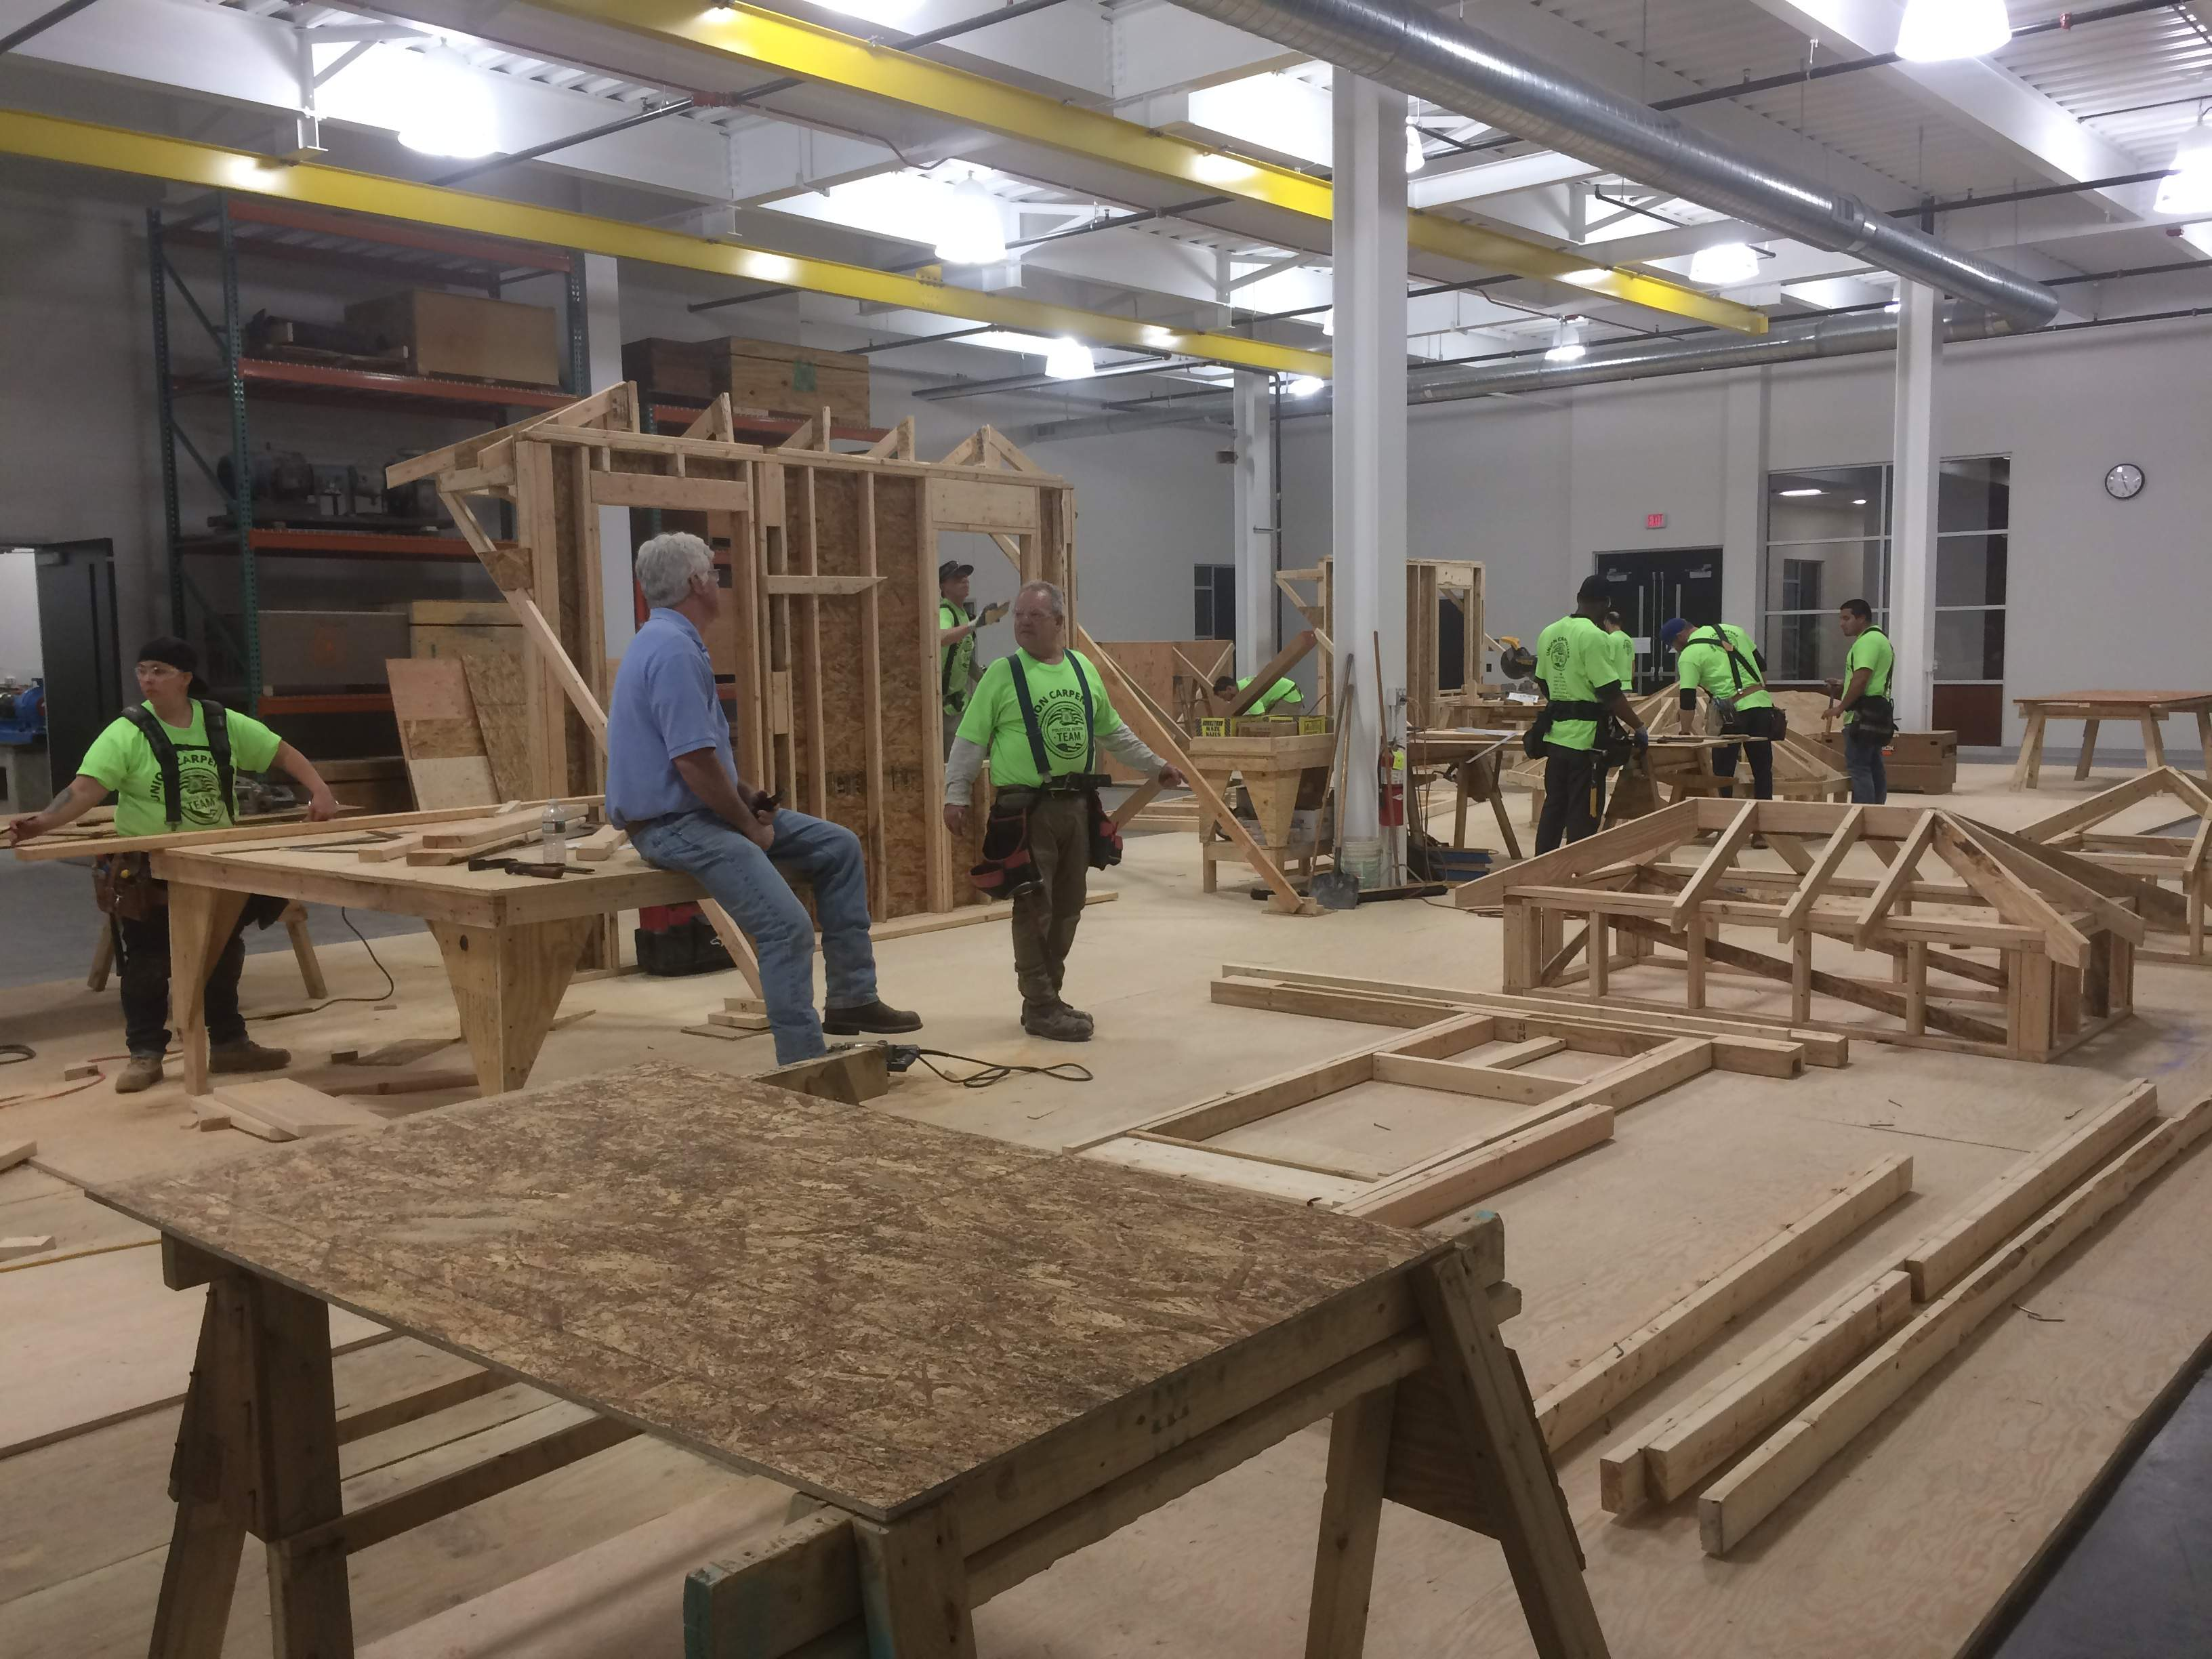 The Northeast Regional Council of Carpenters' new New Jersey Carpenters Apprentice Training Center, in Edison.